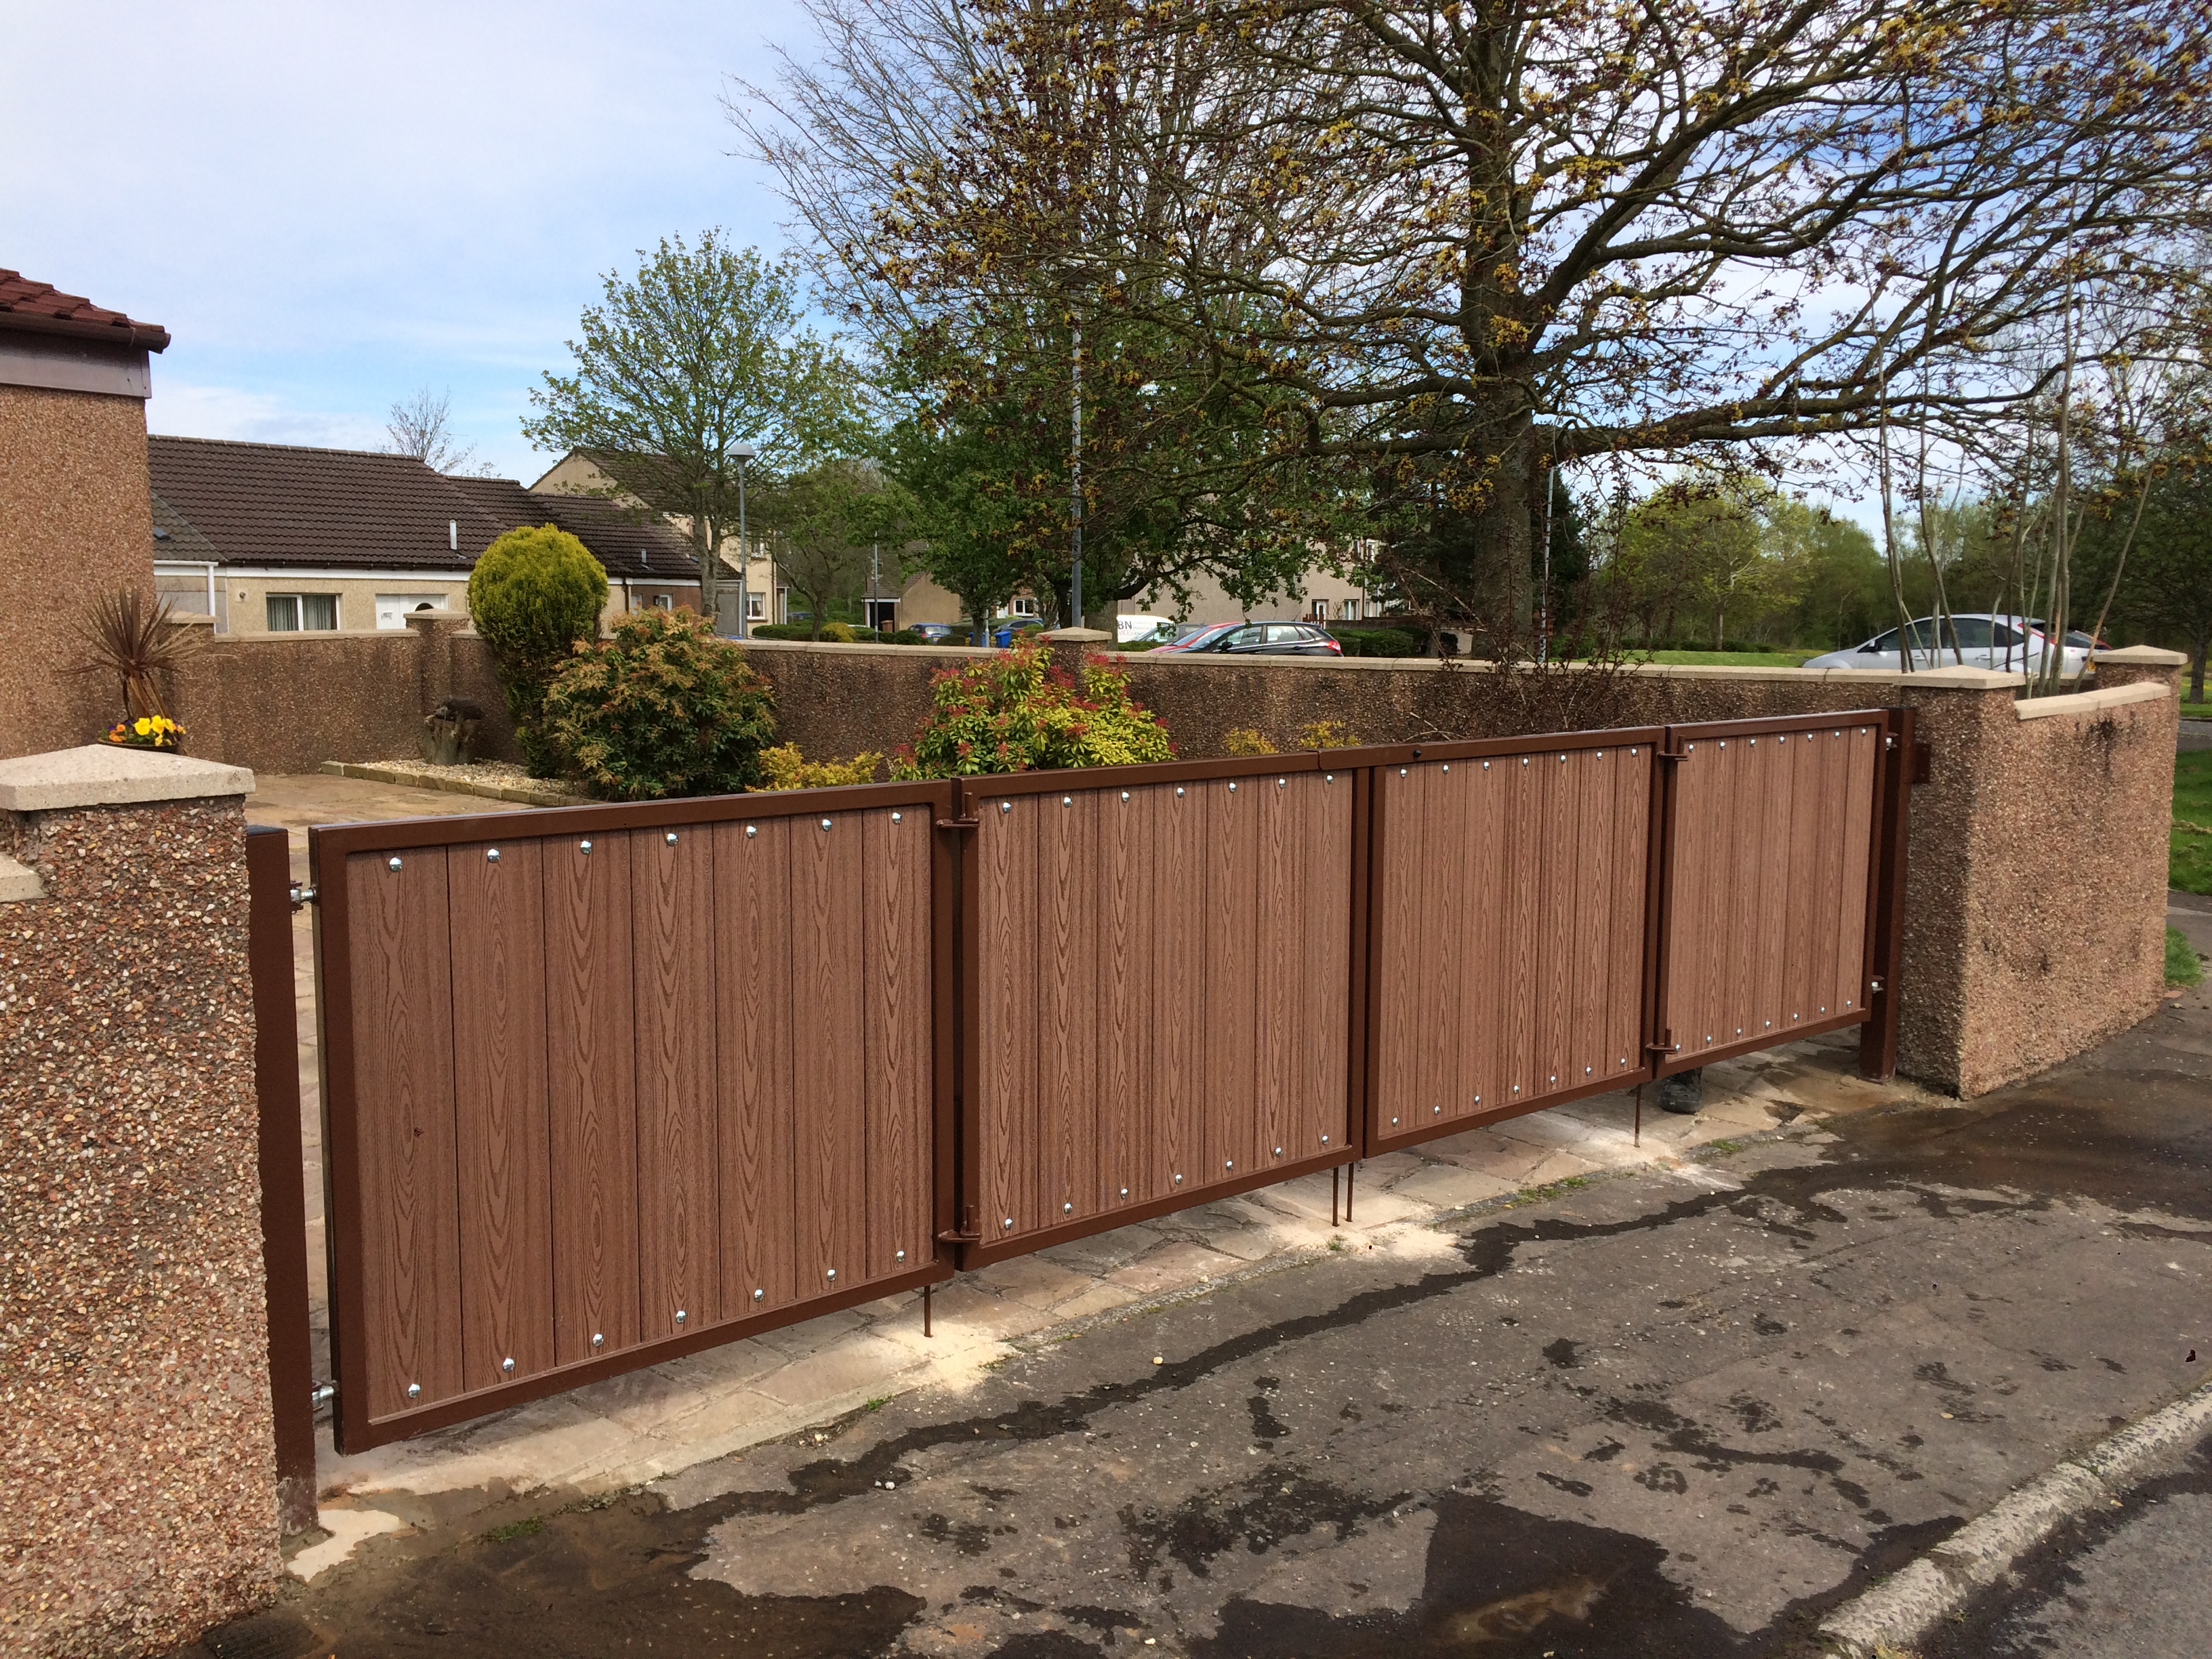 Composite wood gates with metal frame, supplied and fitted by Dain Art Iron.